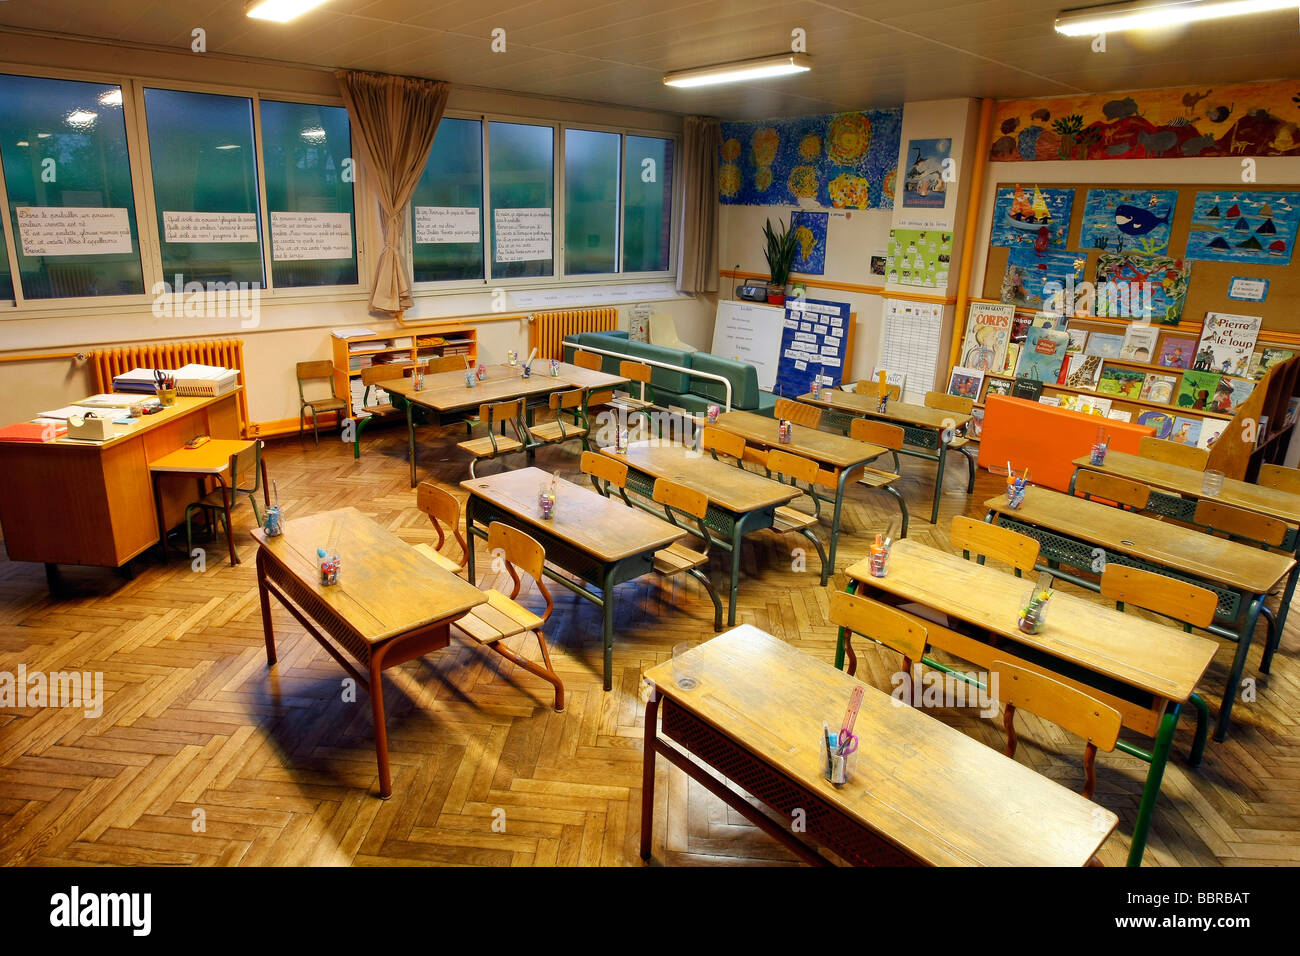 ELEMENTARY SCHOOL CLASSROOM WITHOUT CHILDREN, THE ROOMS ...